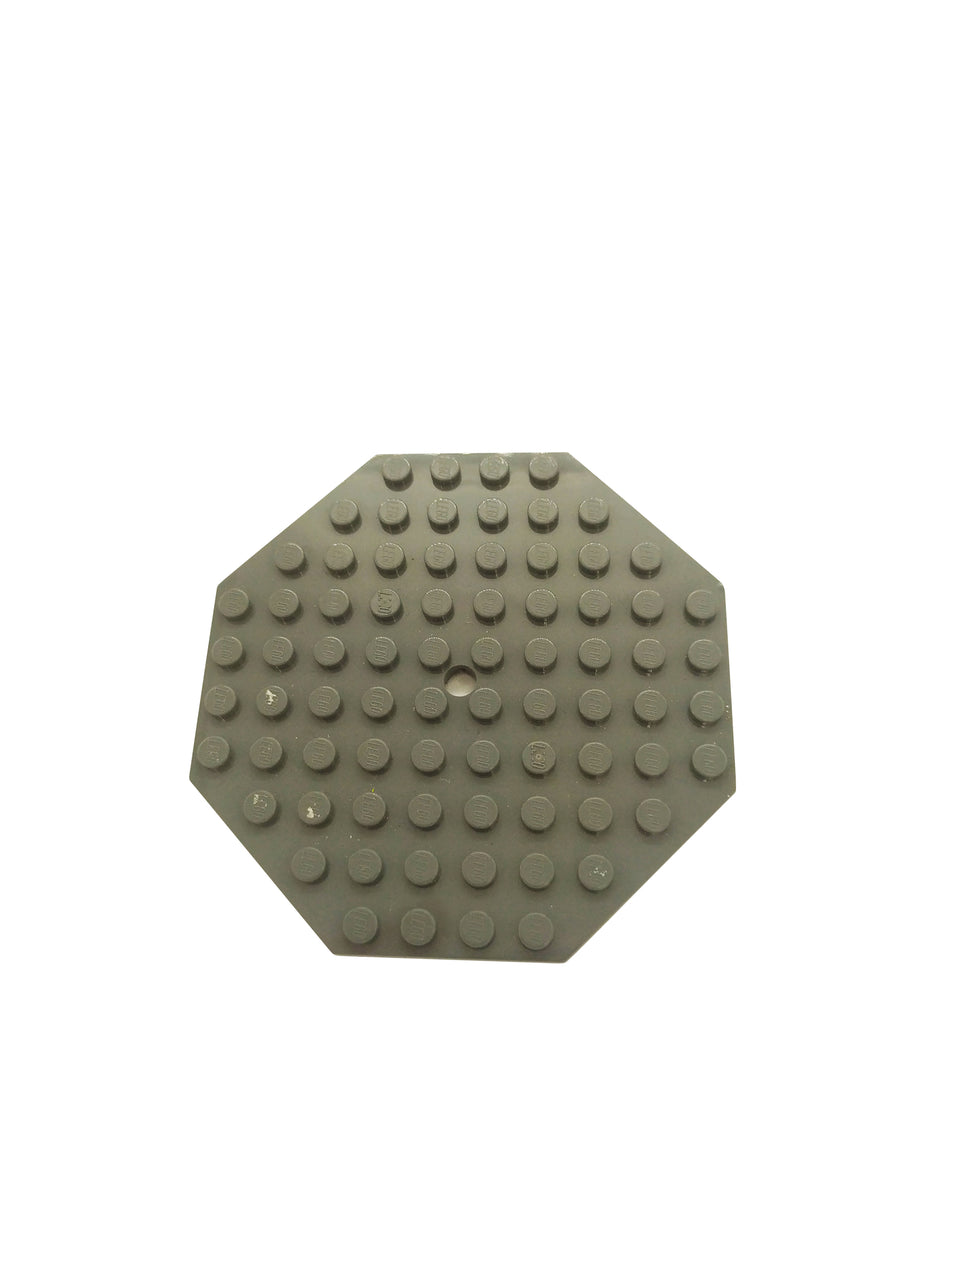 Special surface in dark gray - Lego